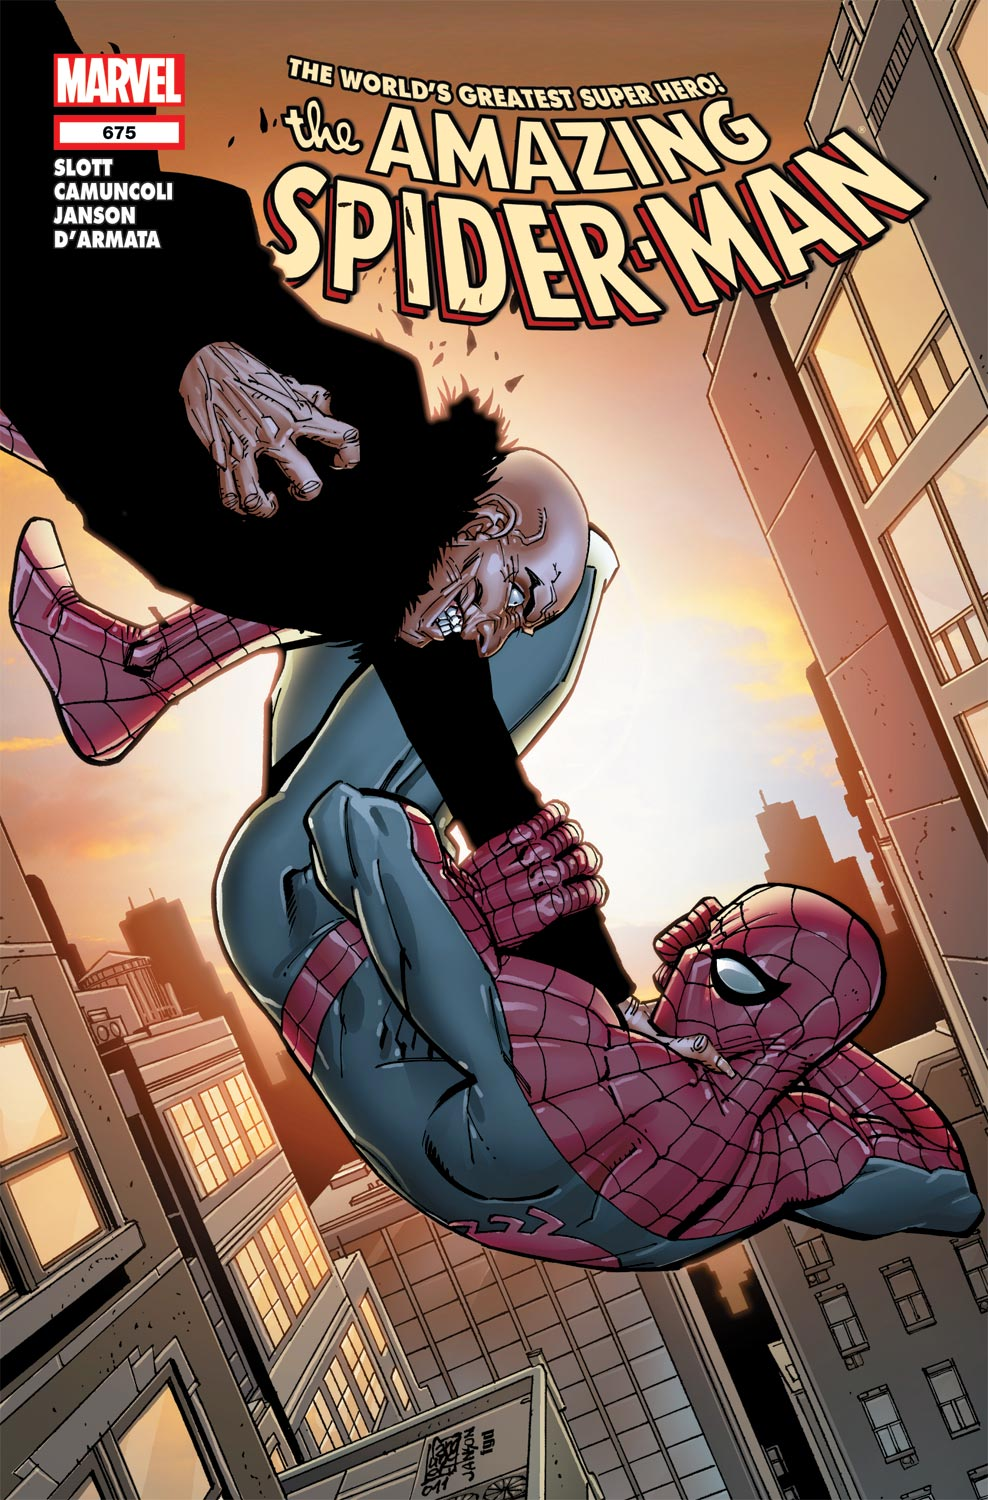 The Amazing Spider-Man #675